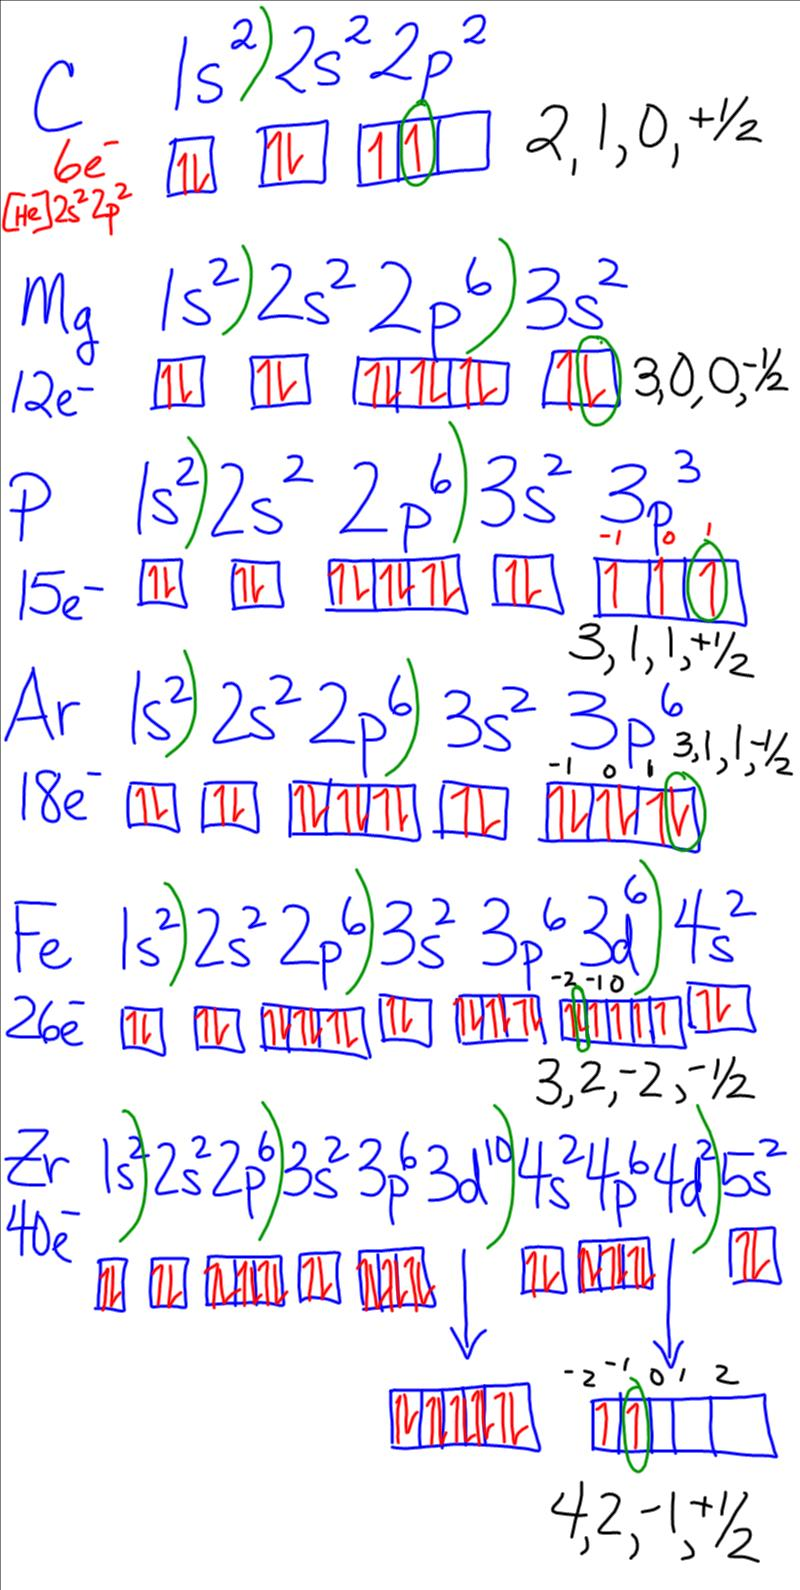 Octet rule periodic table images periodic table images chemistry went over homework discussed octet rule and trends went over homework discussed octet rule and gamestrikefo Image collections